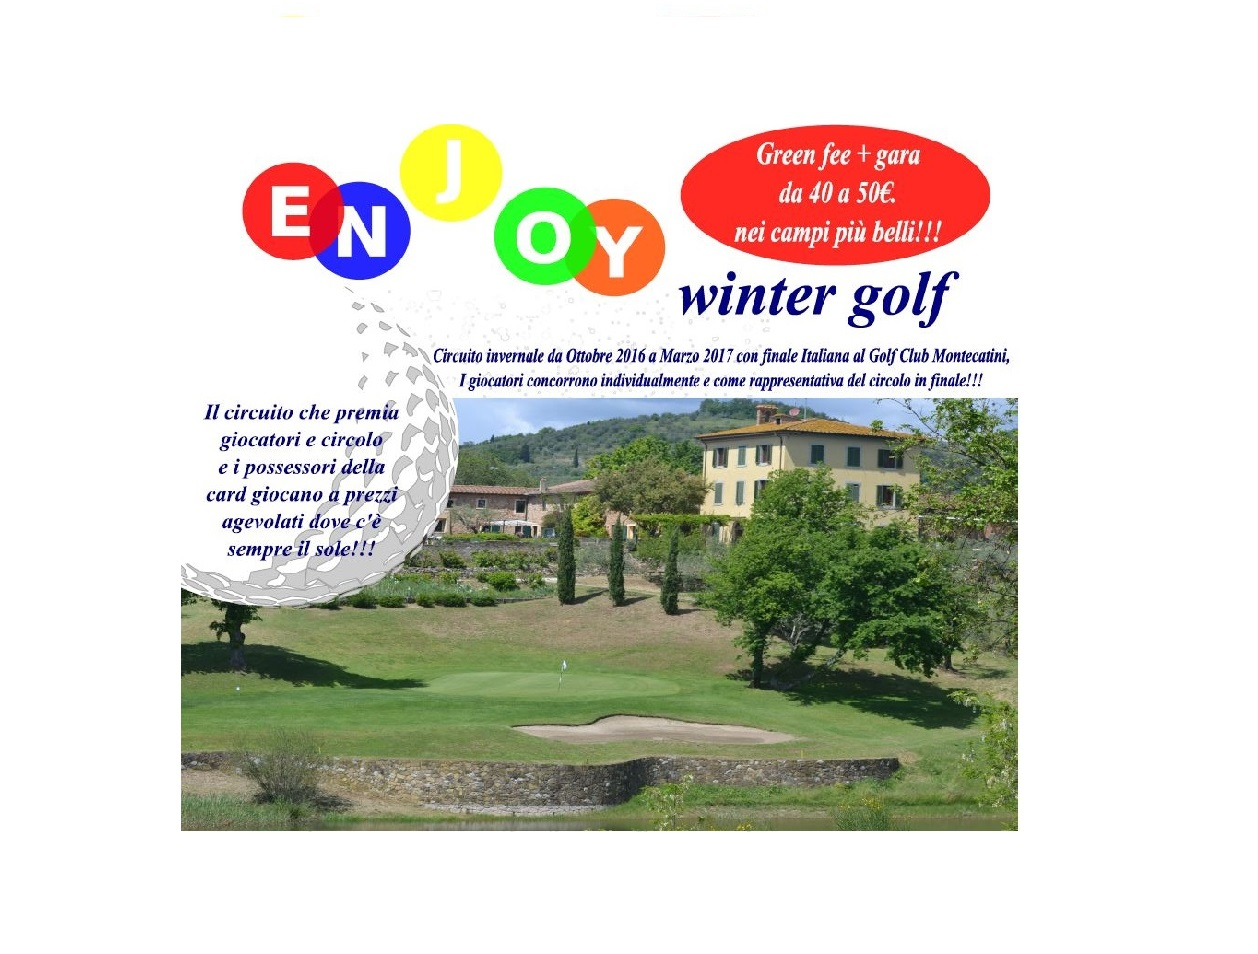 Enjoy Winter Golf